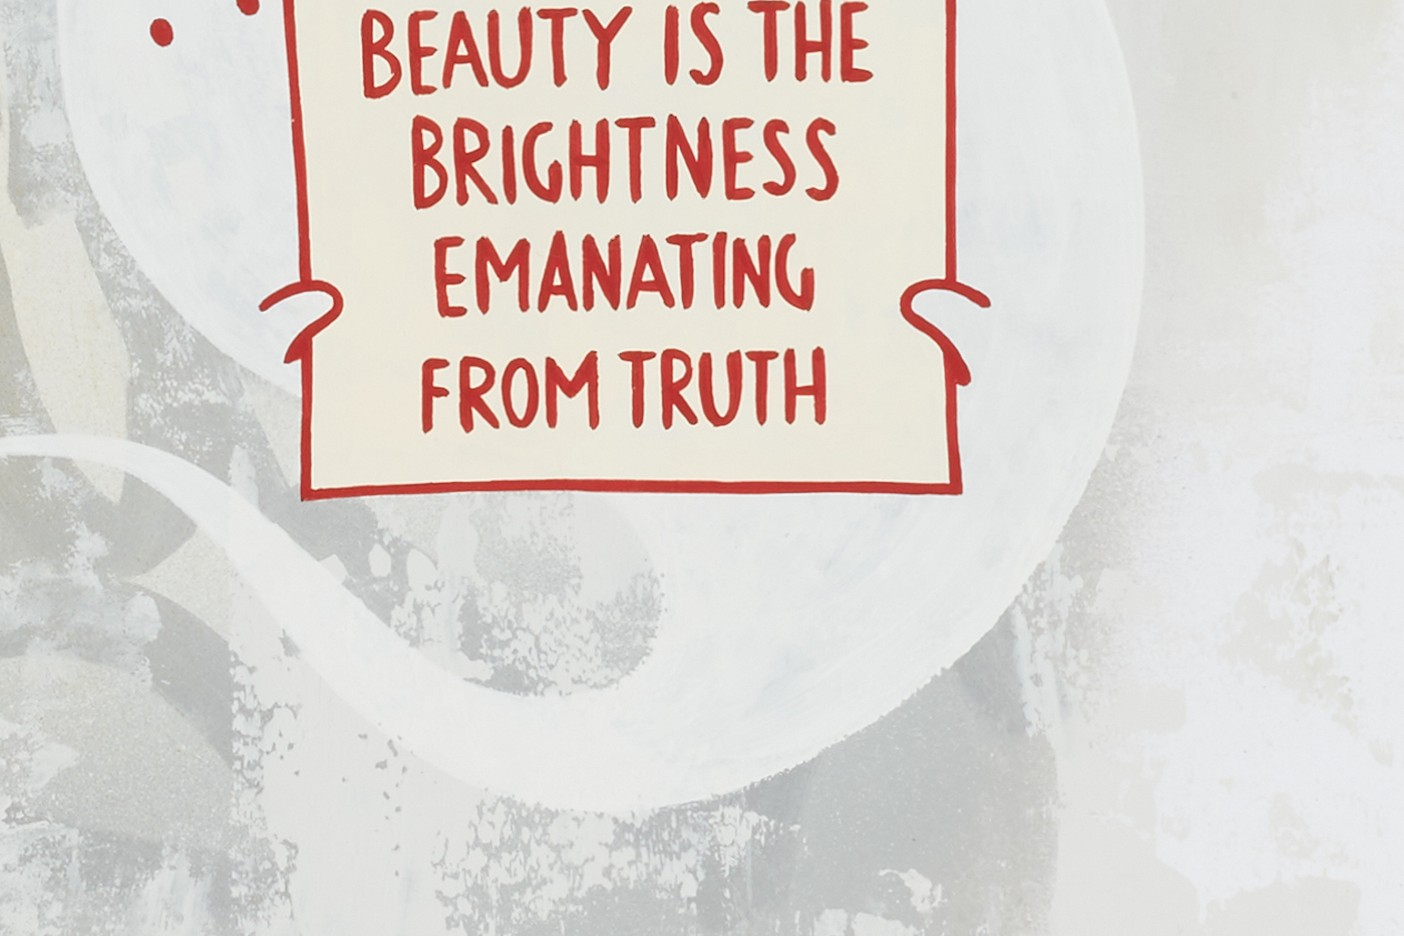 Beauty Is The Brightness Emanating From Truth